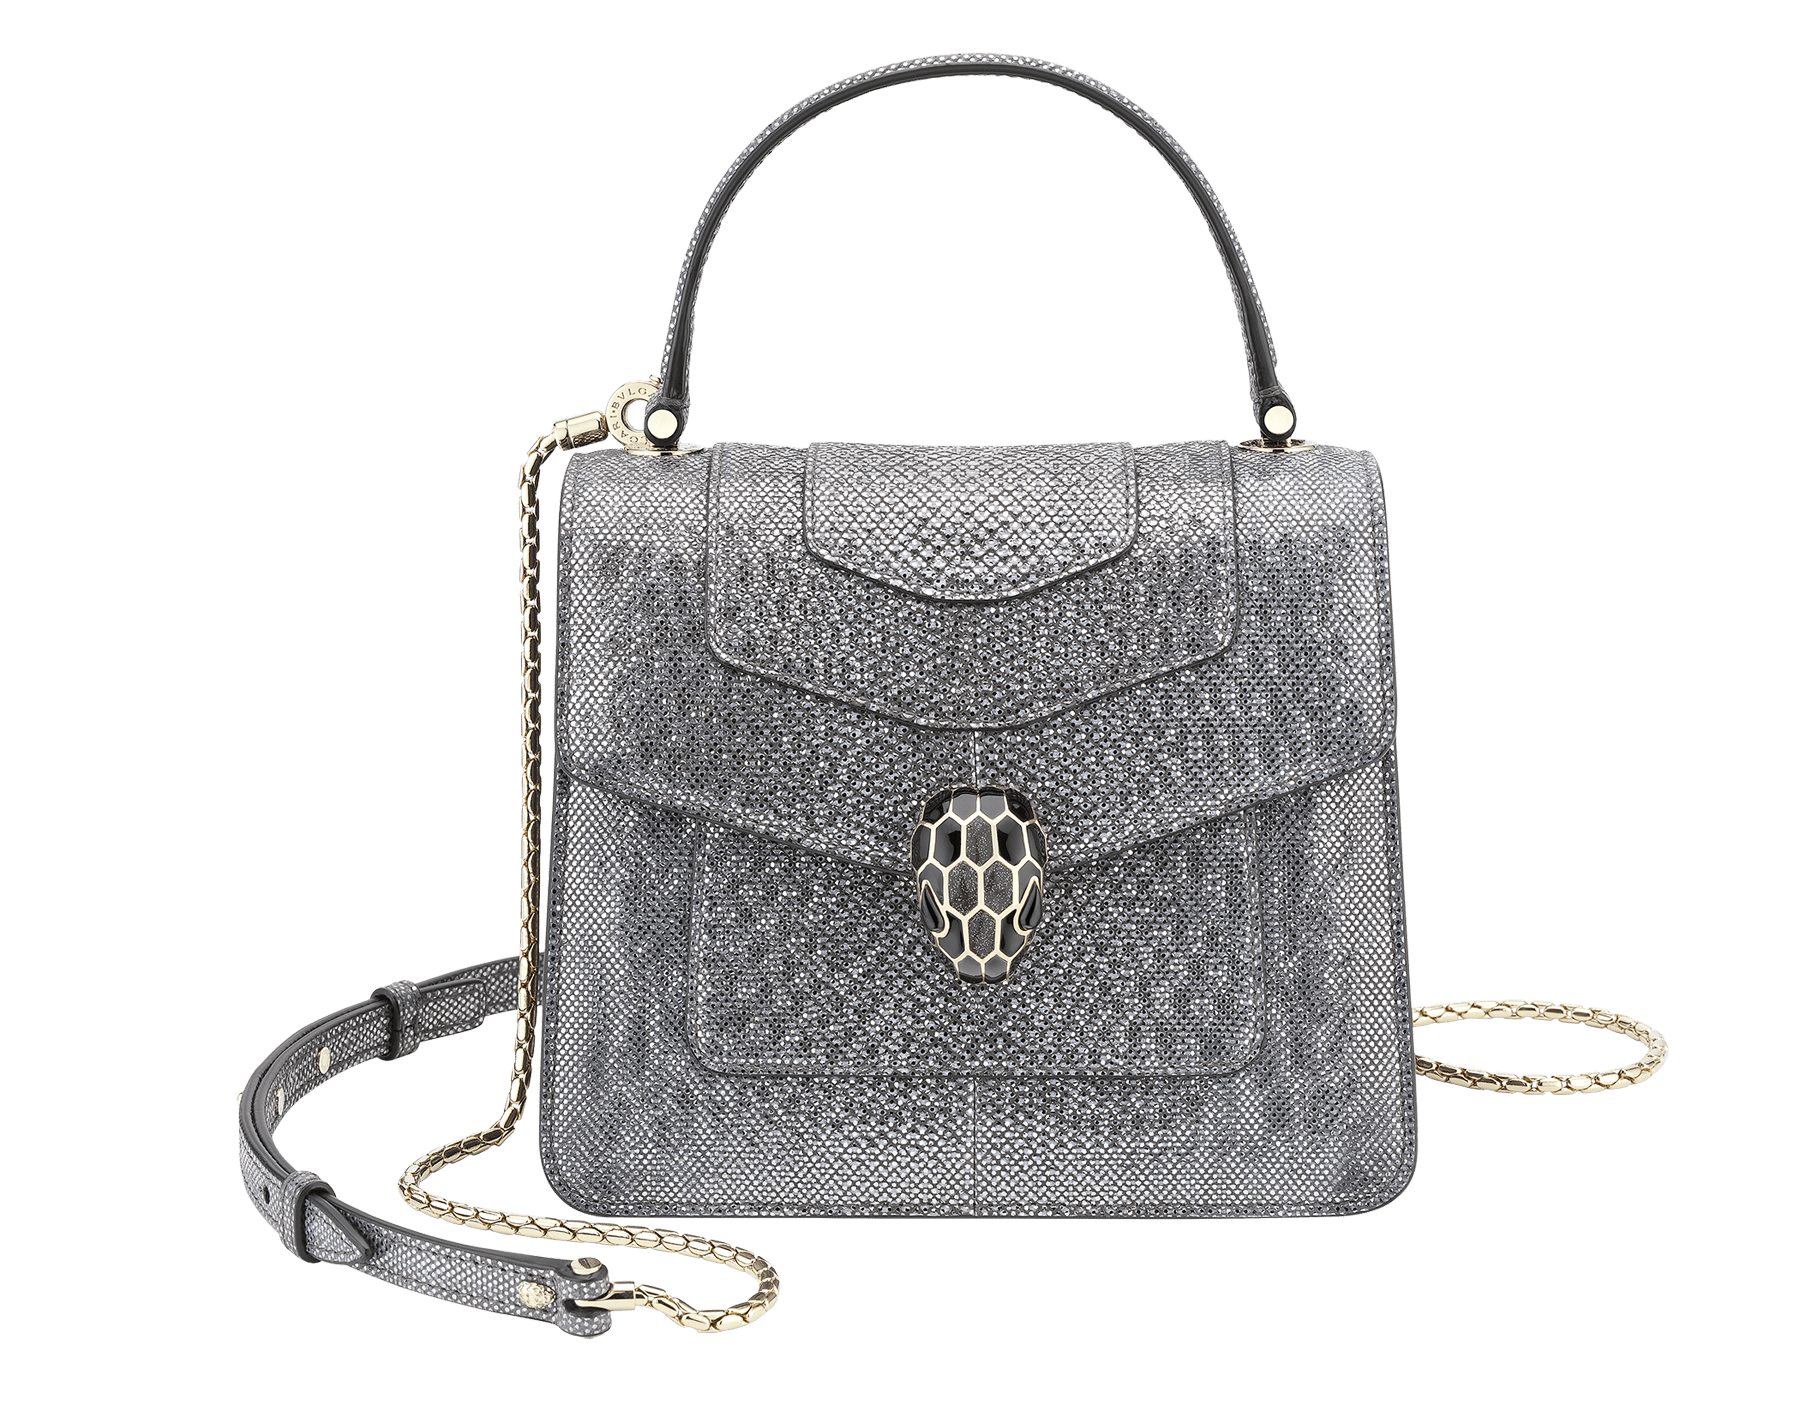 Serpenti Forever crossbody bag in forest emerald metallic karung skin. Snakehead closure in light gold plated bras decorated with shiny black and glitter forest emerald, and black onyx eyes. 752-MK image 1